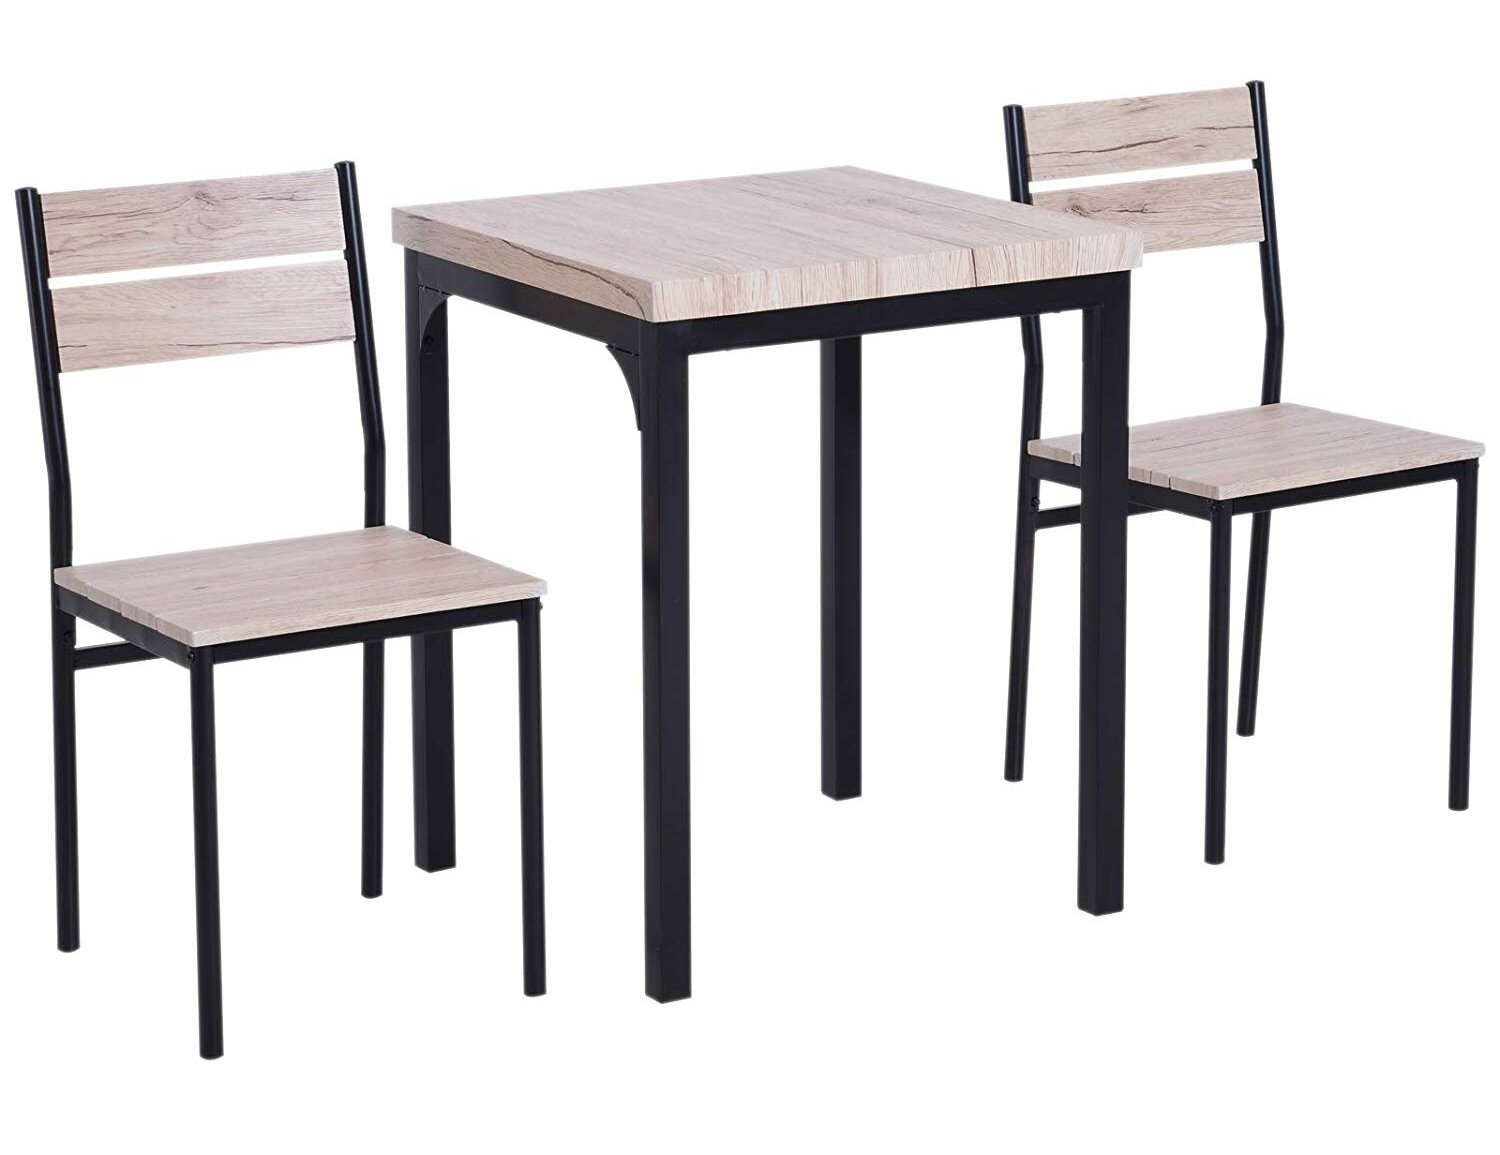 Inspiration about Well Liked Gracie Oaks Staley Rustic Country 3 Piece Dining Set (#18 of 20)